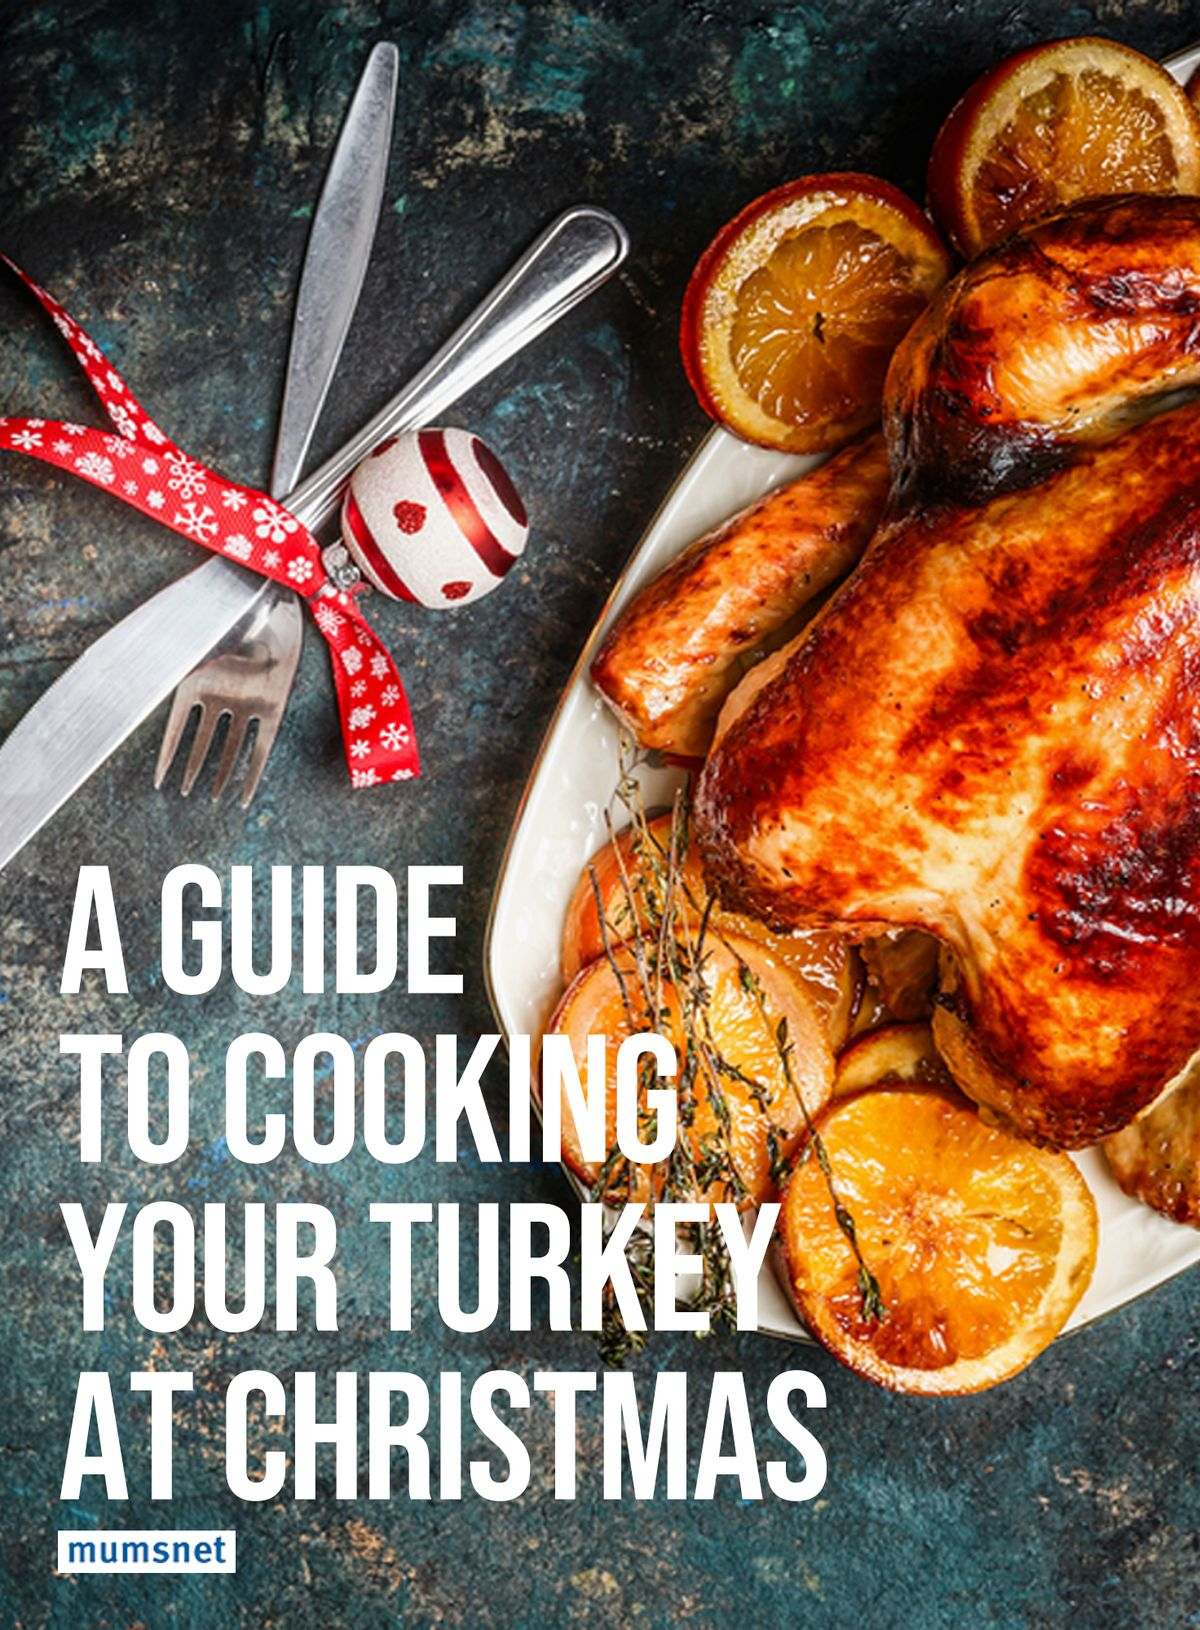 Watch our video with Paul Kelly, a turkey farmer and owner of KellyBronze, for tips on how to make the perfect Christmas turkey. It's an easy recipe that guarantees a great tasting turkey on the big day.